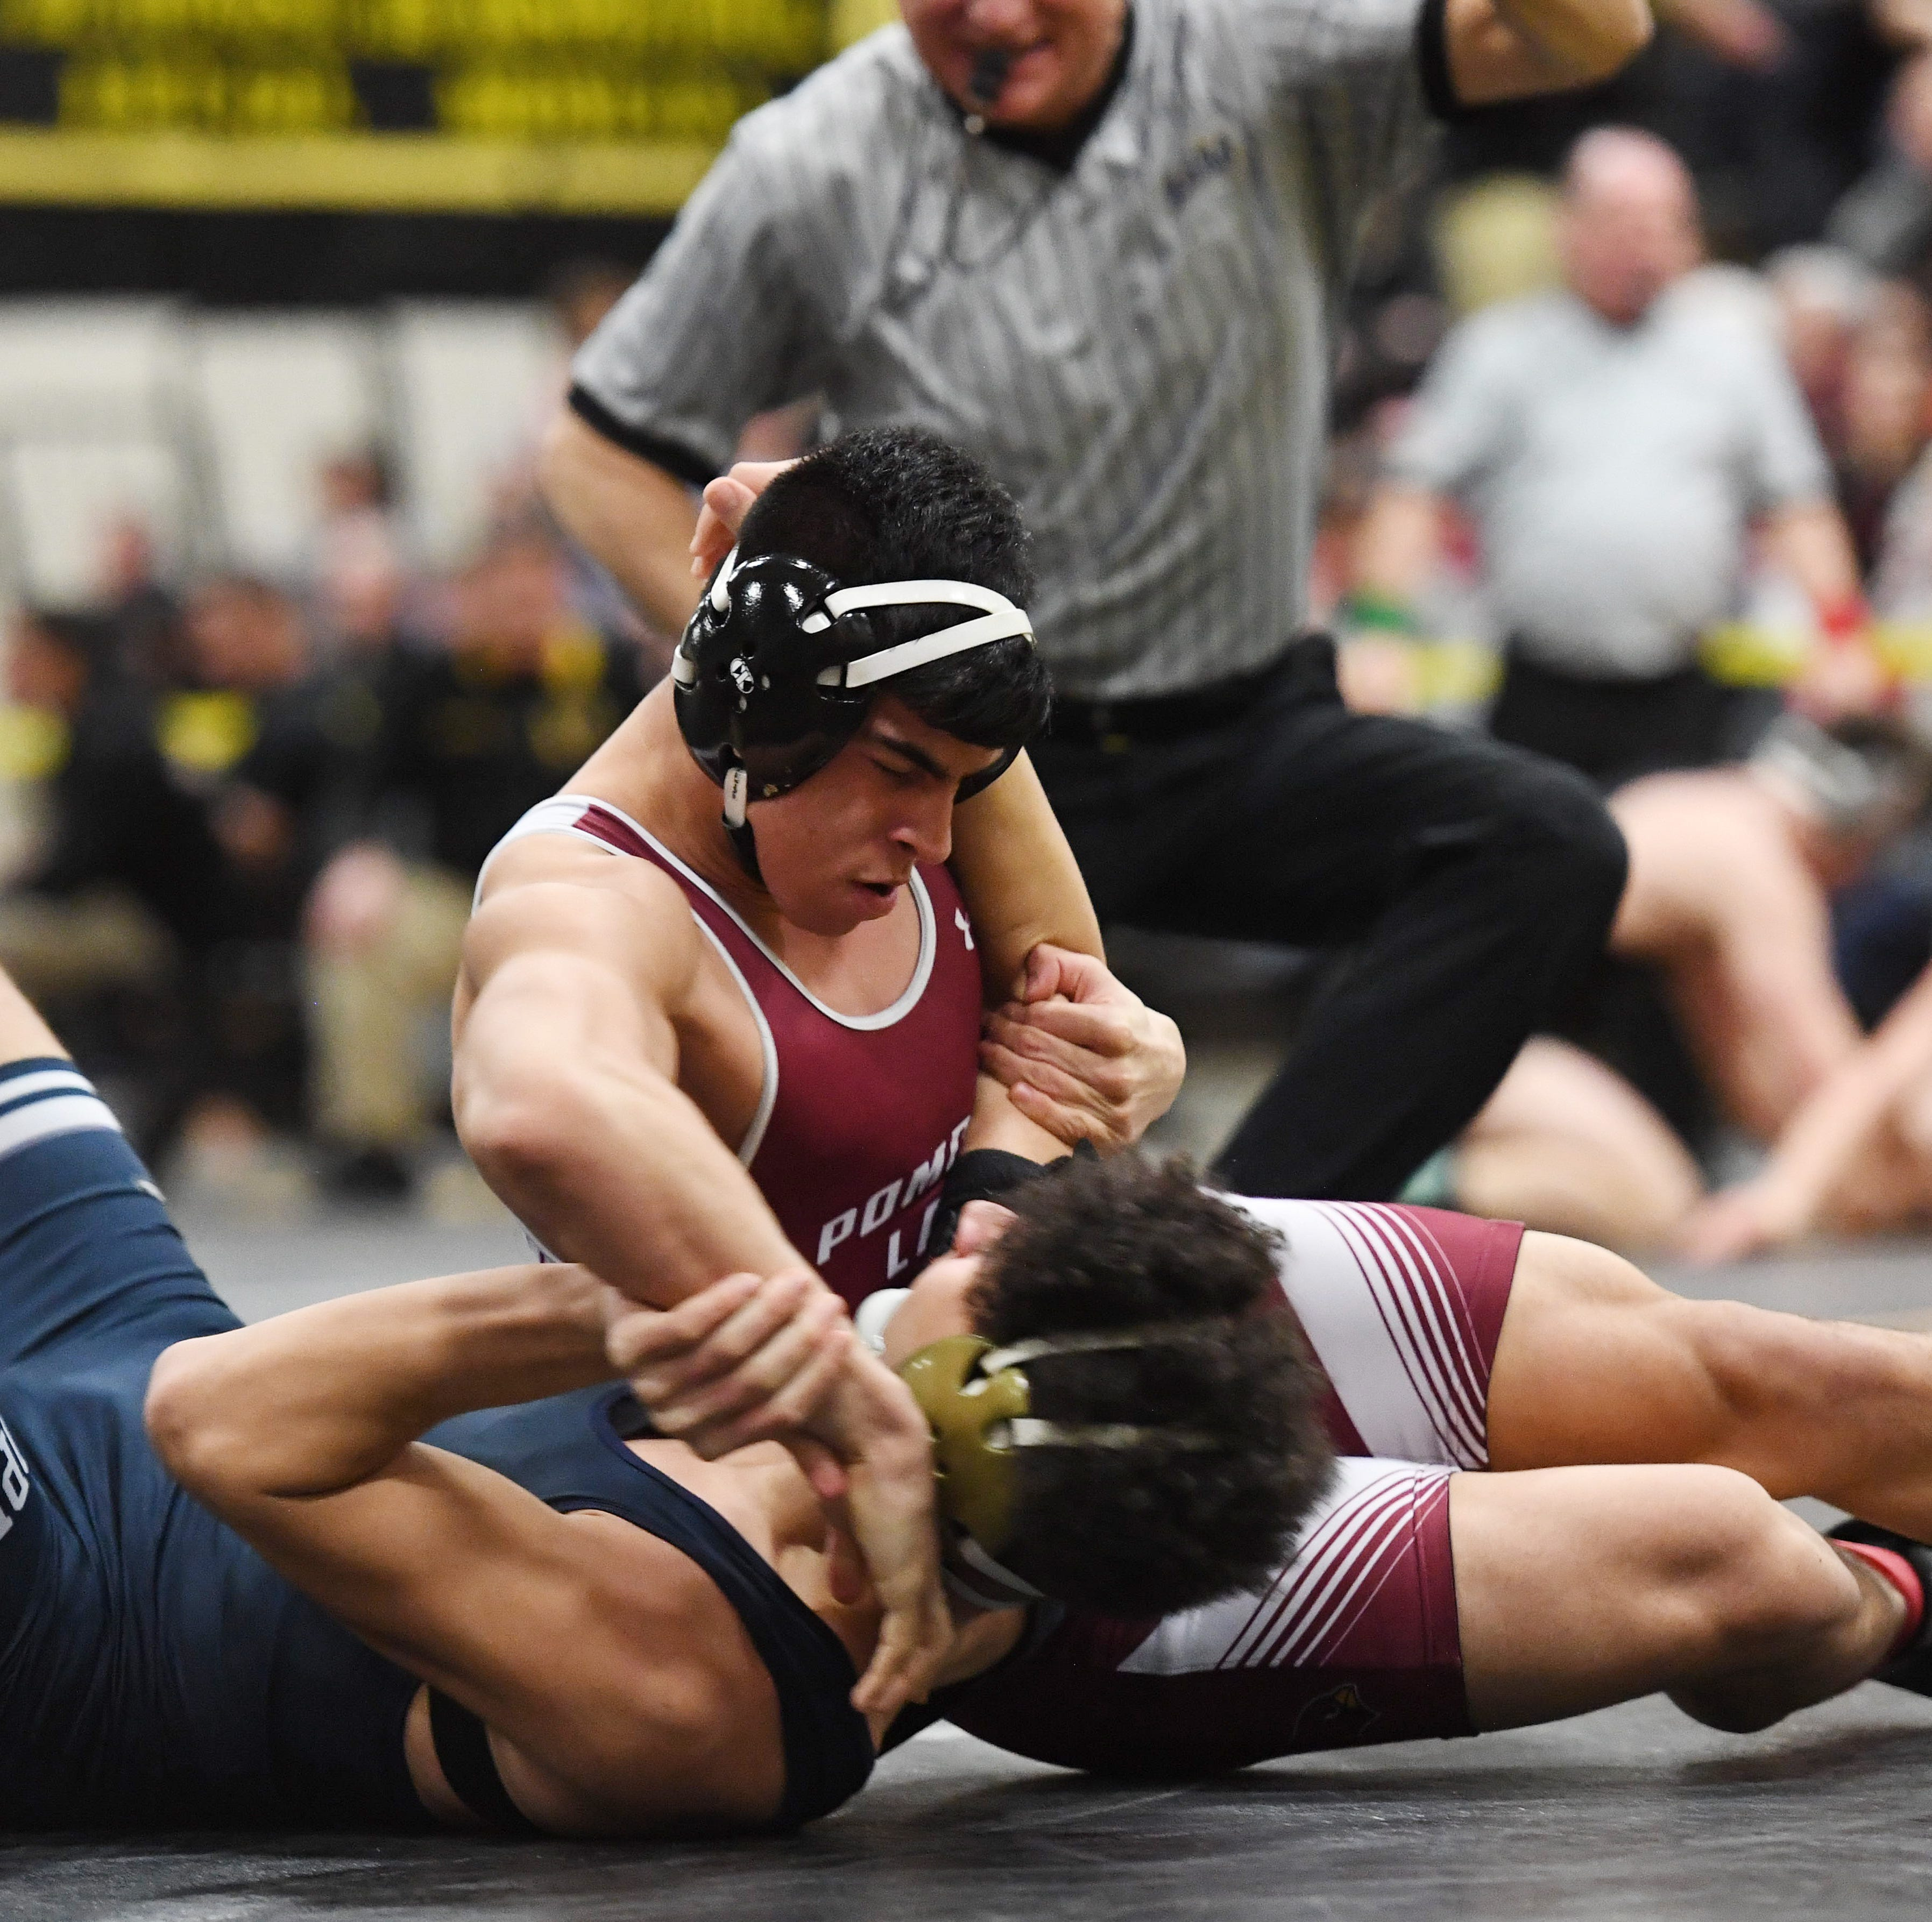 NJ wrestling regionals 2019: Region 1 live results